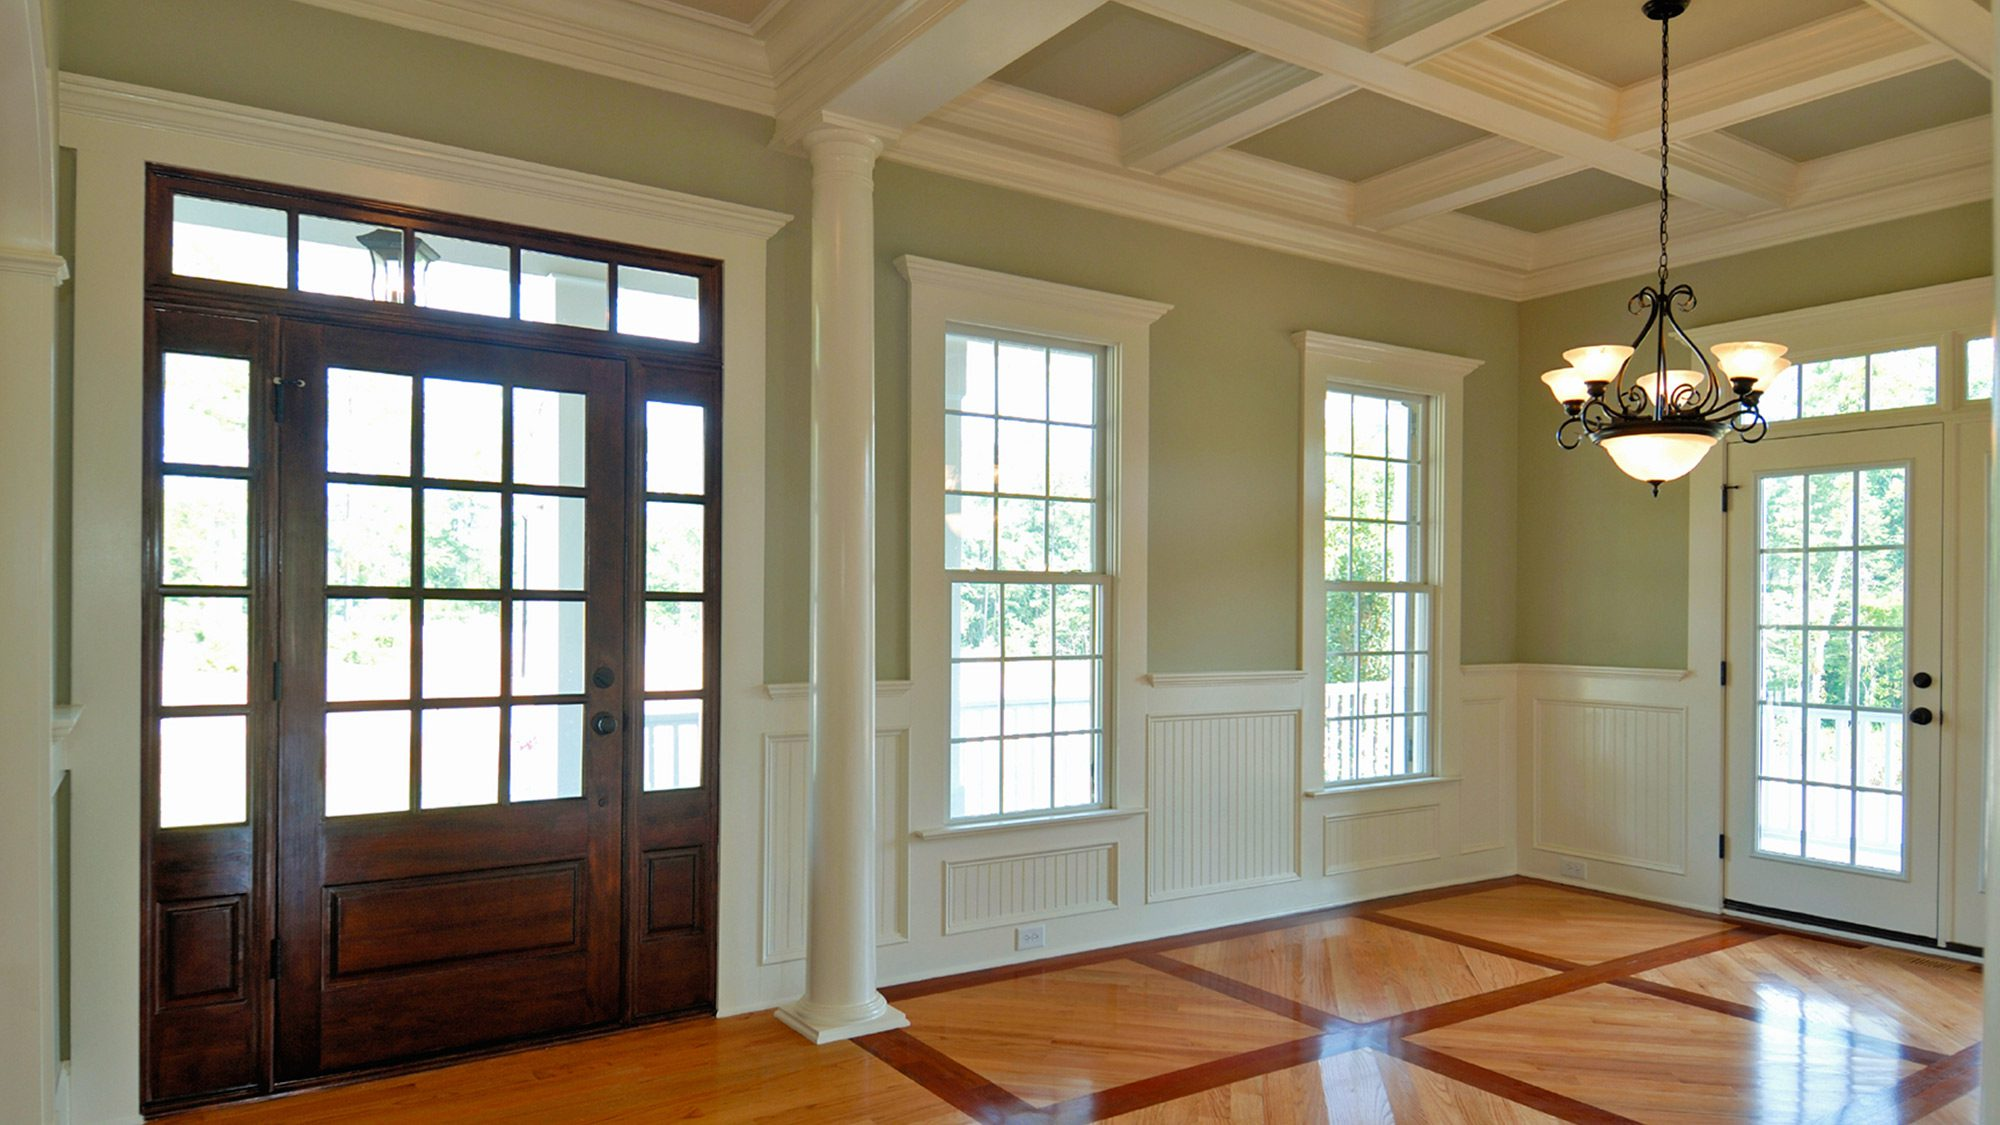 Learning the Lingo: The Mysteries of Doors and Windows